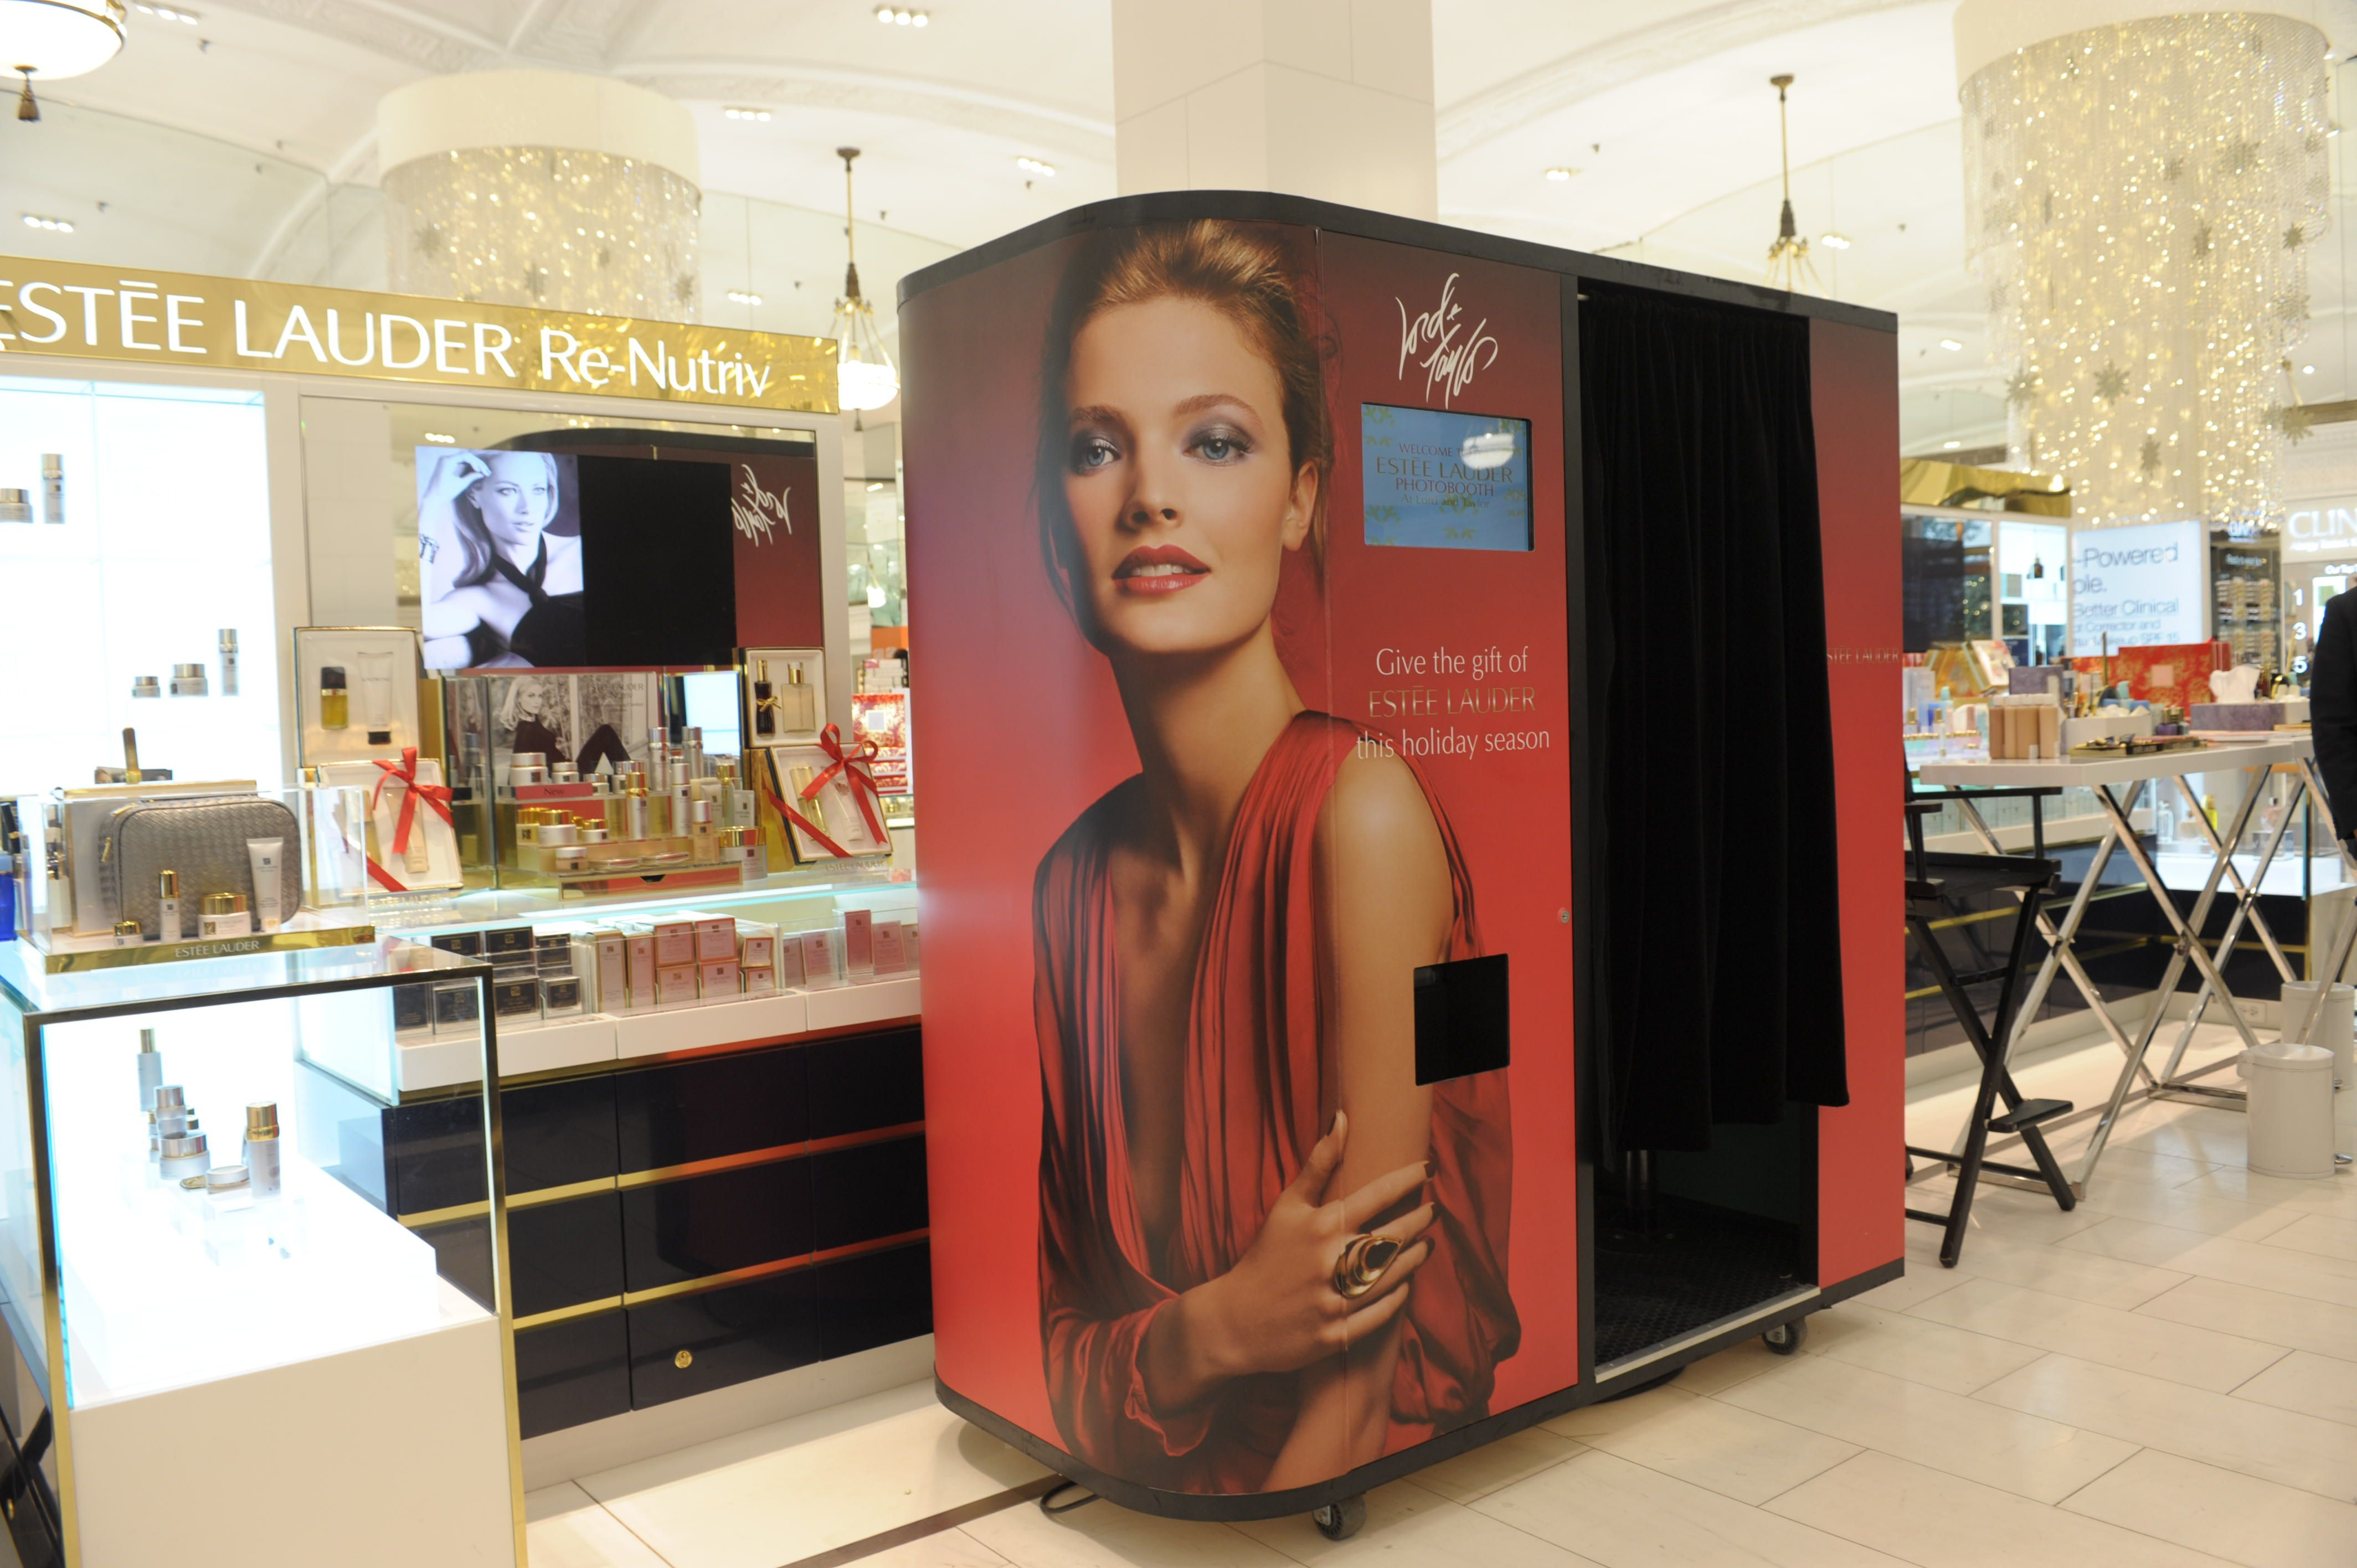 Estee Lauder Custom Photo Booth in retail store in NYC